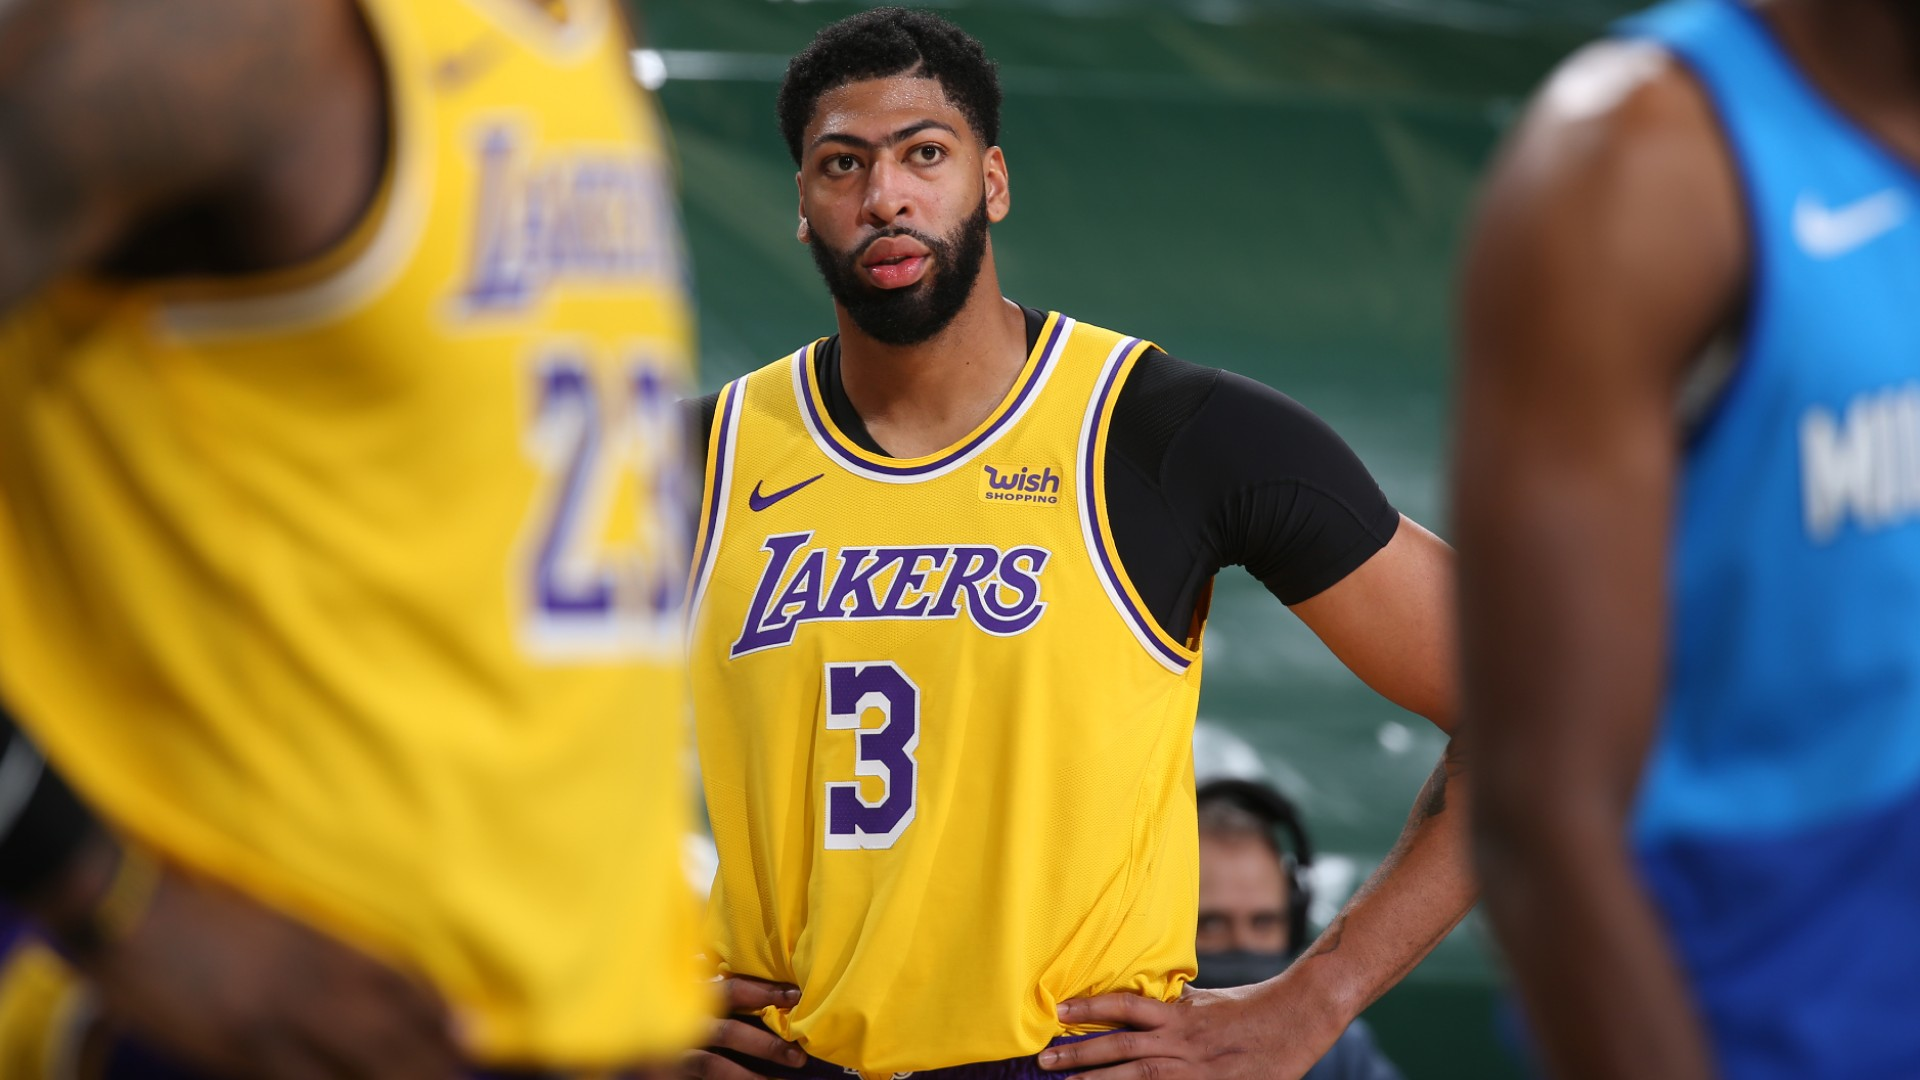 Lakers star Anthony Davis: I suck right now